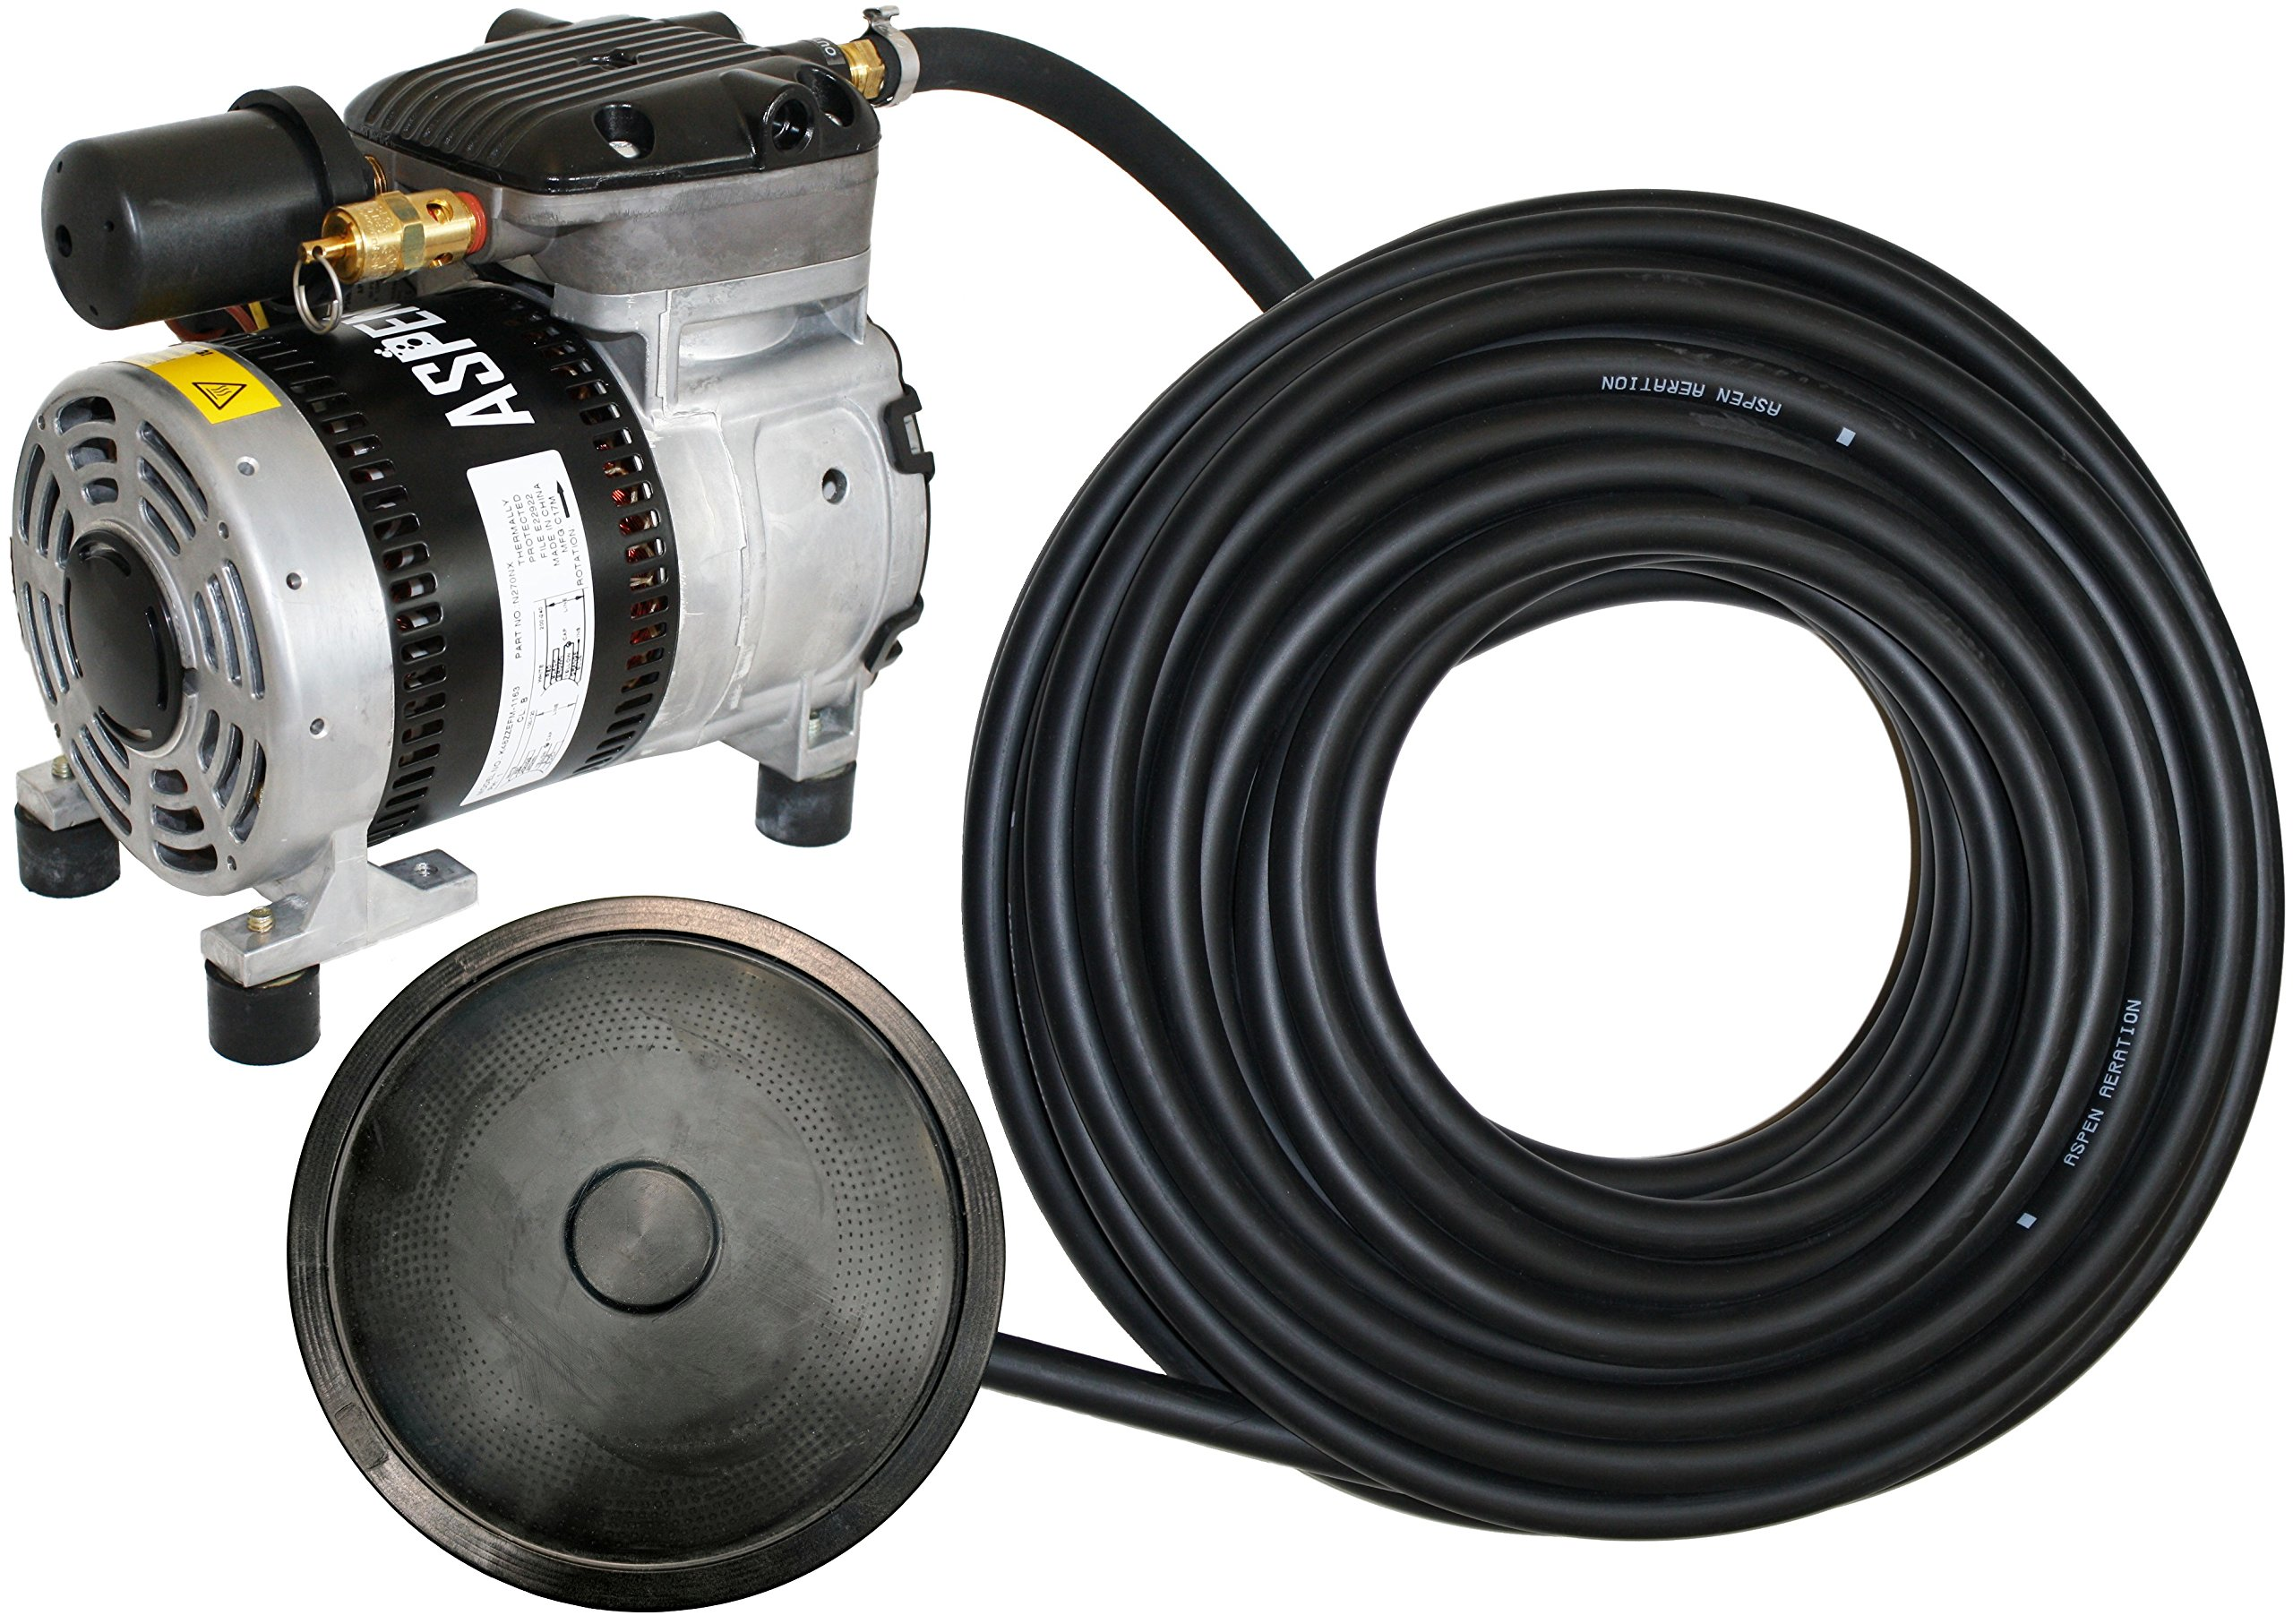 Value Pond Aeration Kit | Improve Water Quality | 1/4 Hp Rocking Piston Aerator + 100' of Weighted Tubing + Self Sink Diffuser by Aspen Aeration Systems